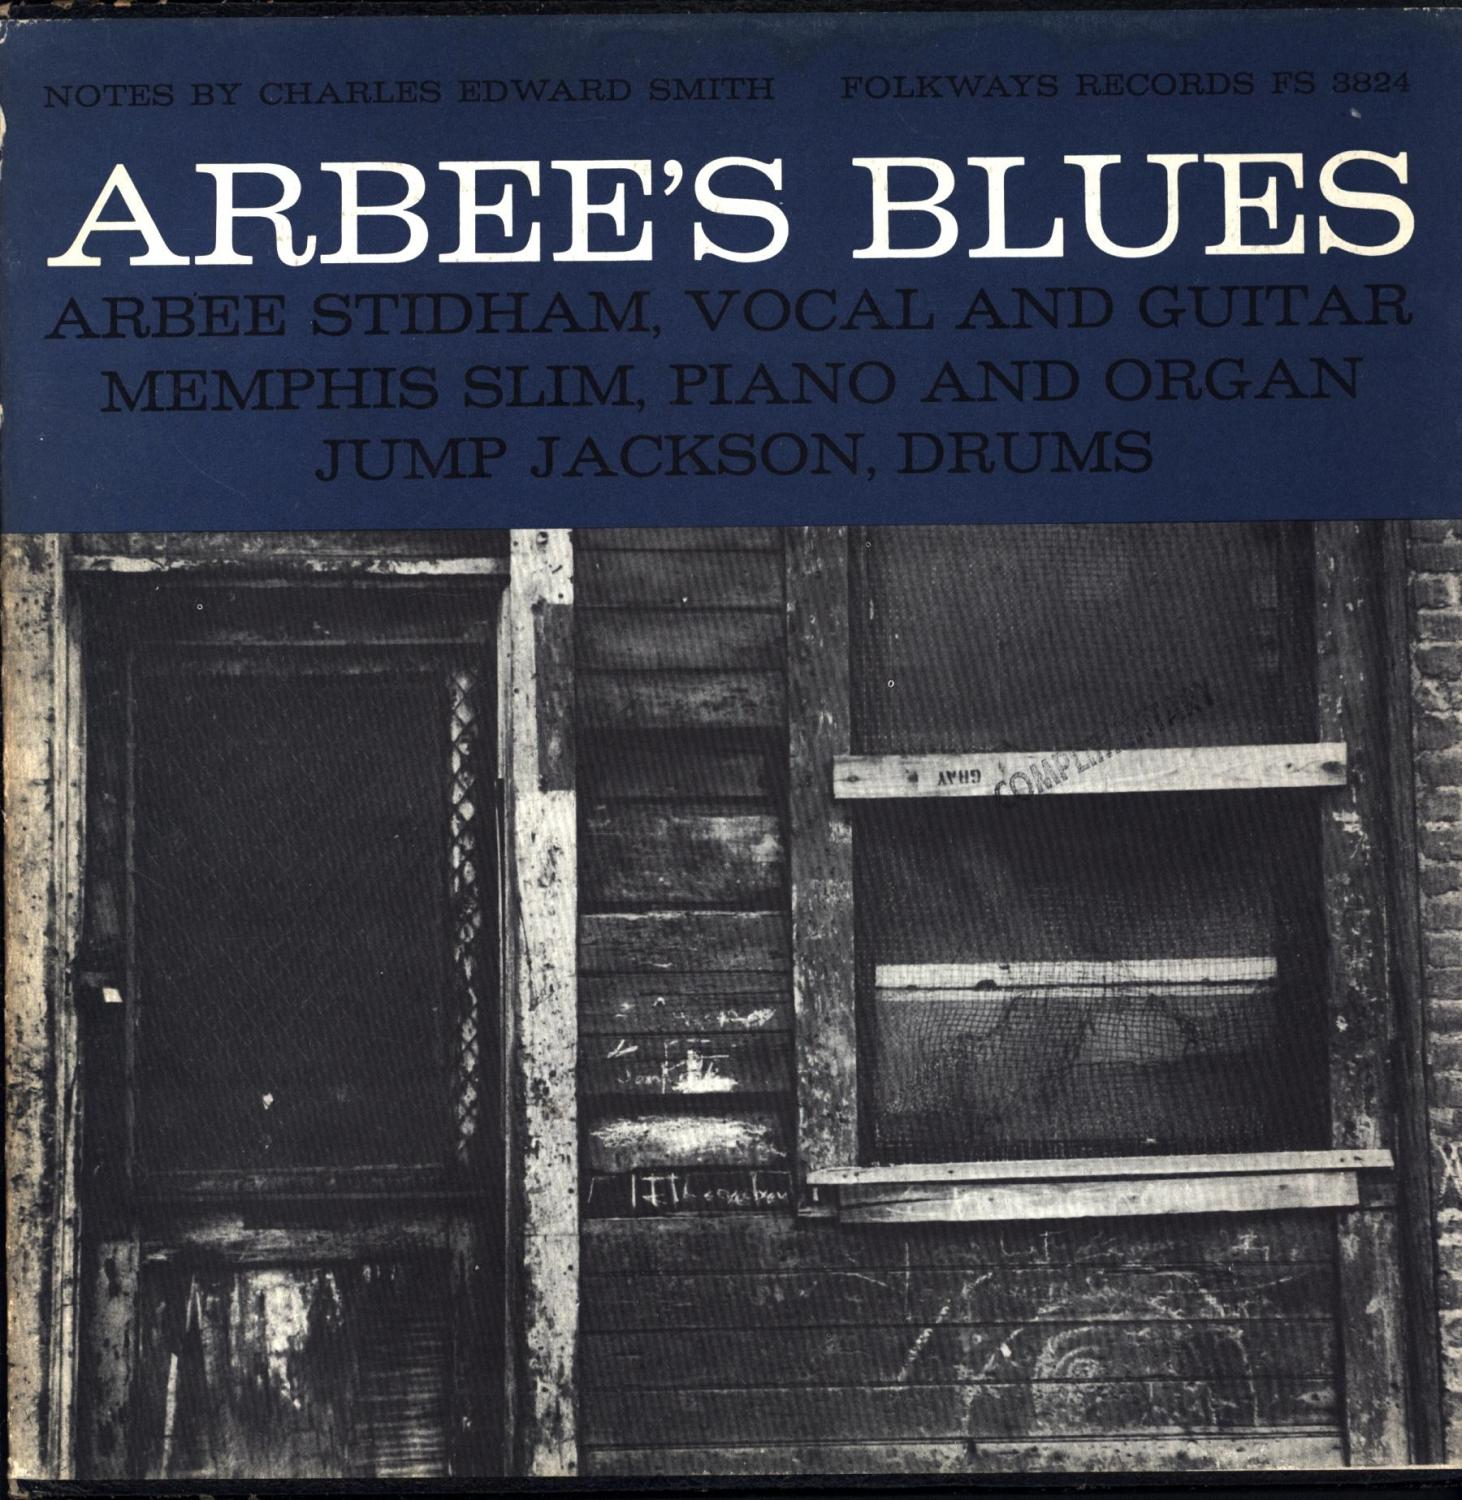 Arbee's Blues / Arbee Stidham, Vocal and Guitar / Memphis Slim, Piano and Organ / Jump Jackson, Drums (VINYL BLUES LP) Arbee Stidham / Notes by Charl